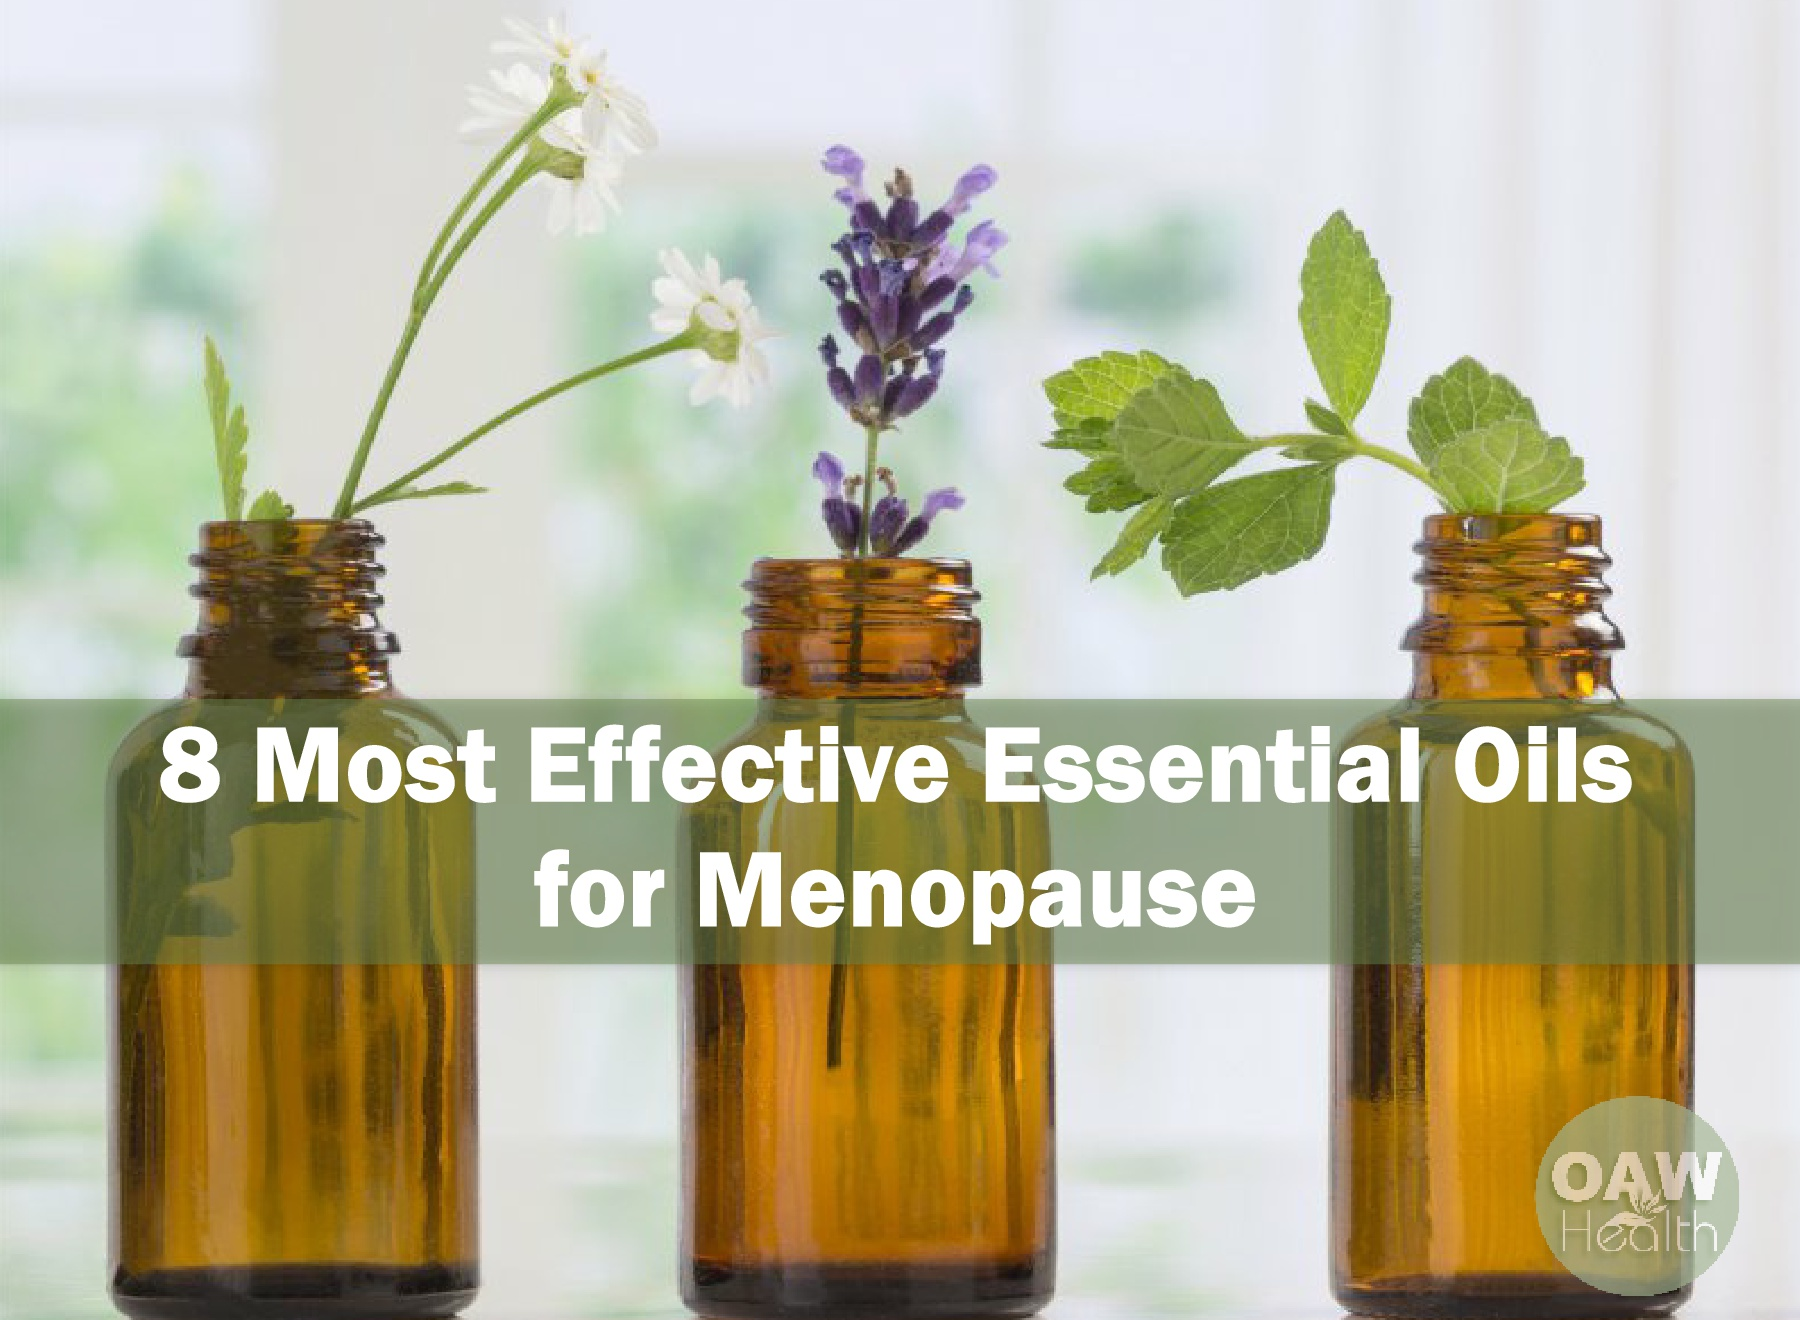 8 Most Effective Essential Oils for Menopause